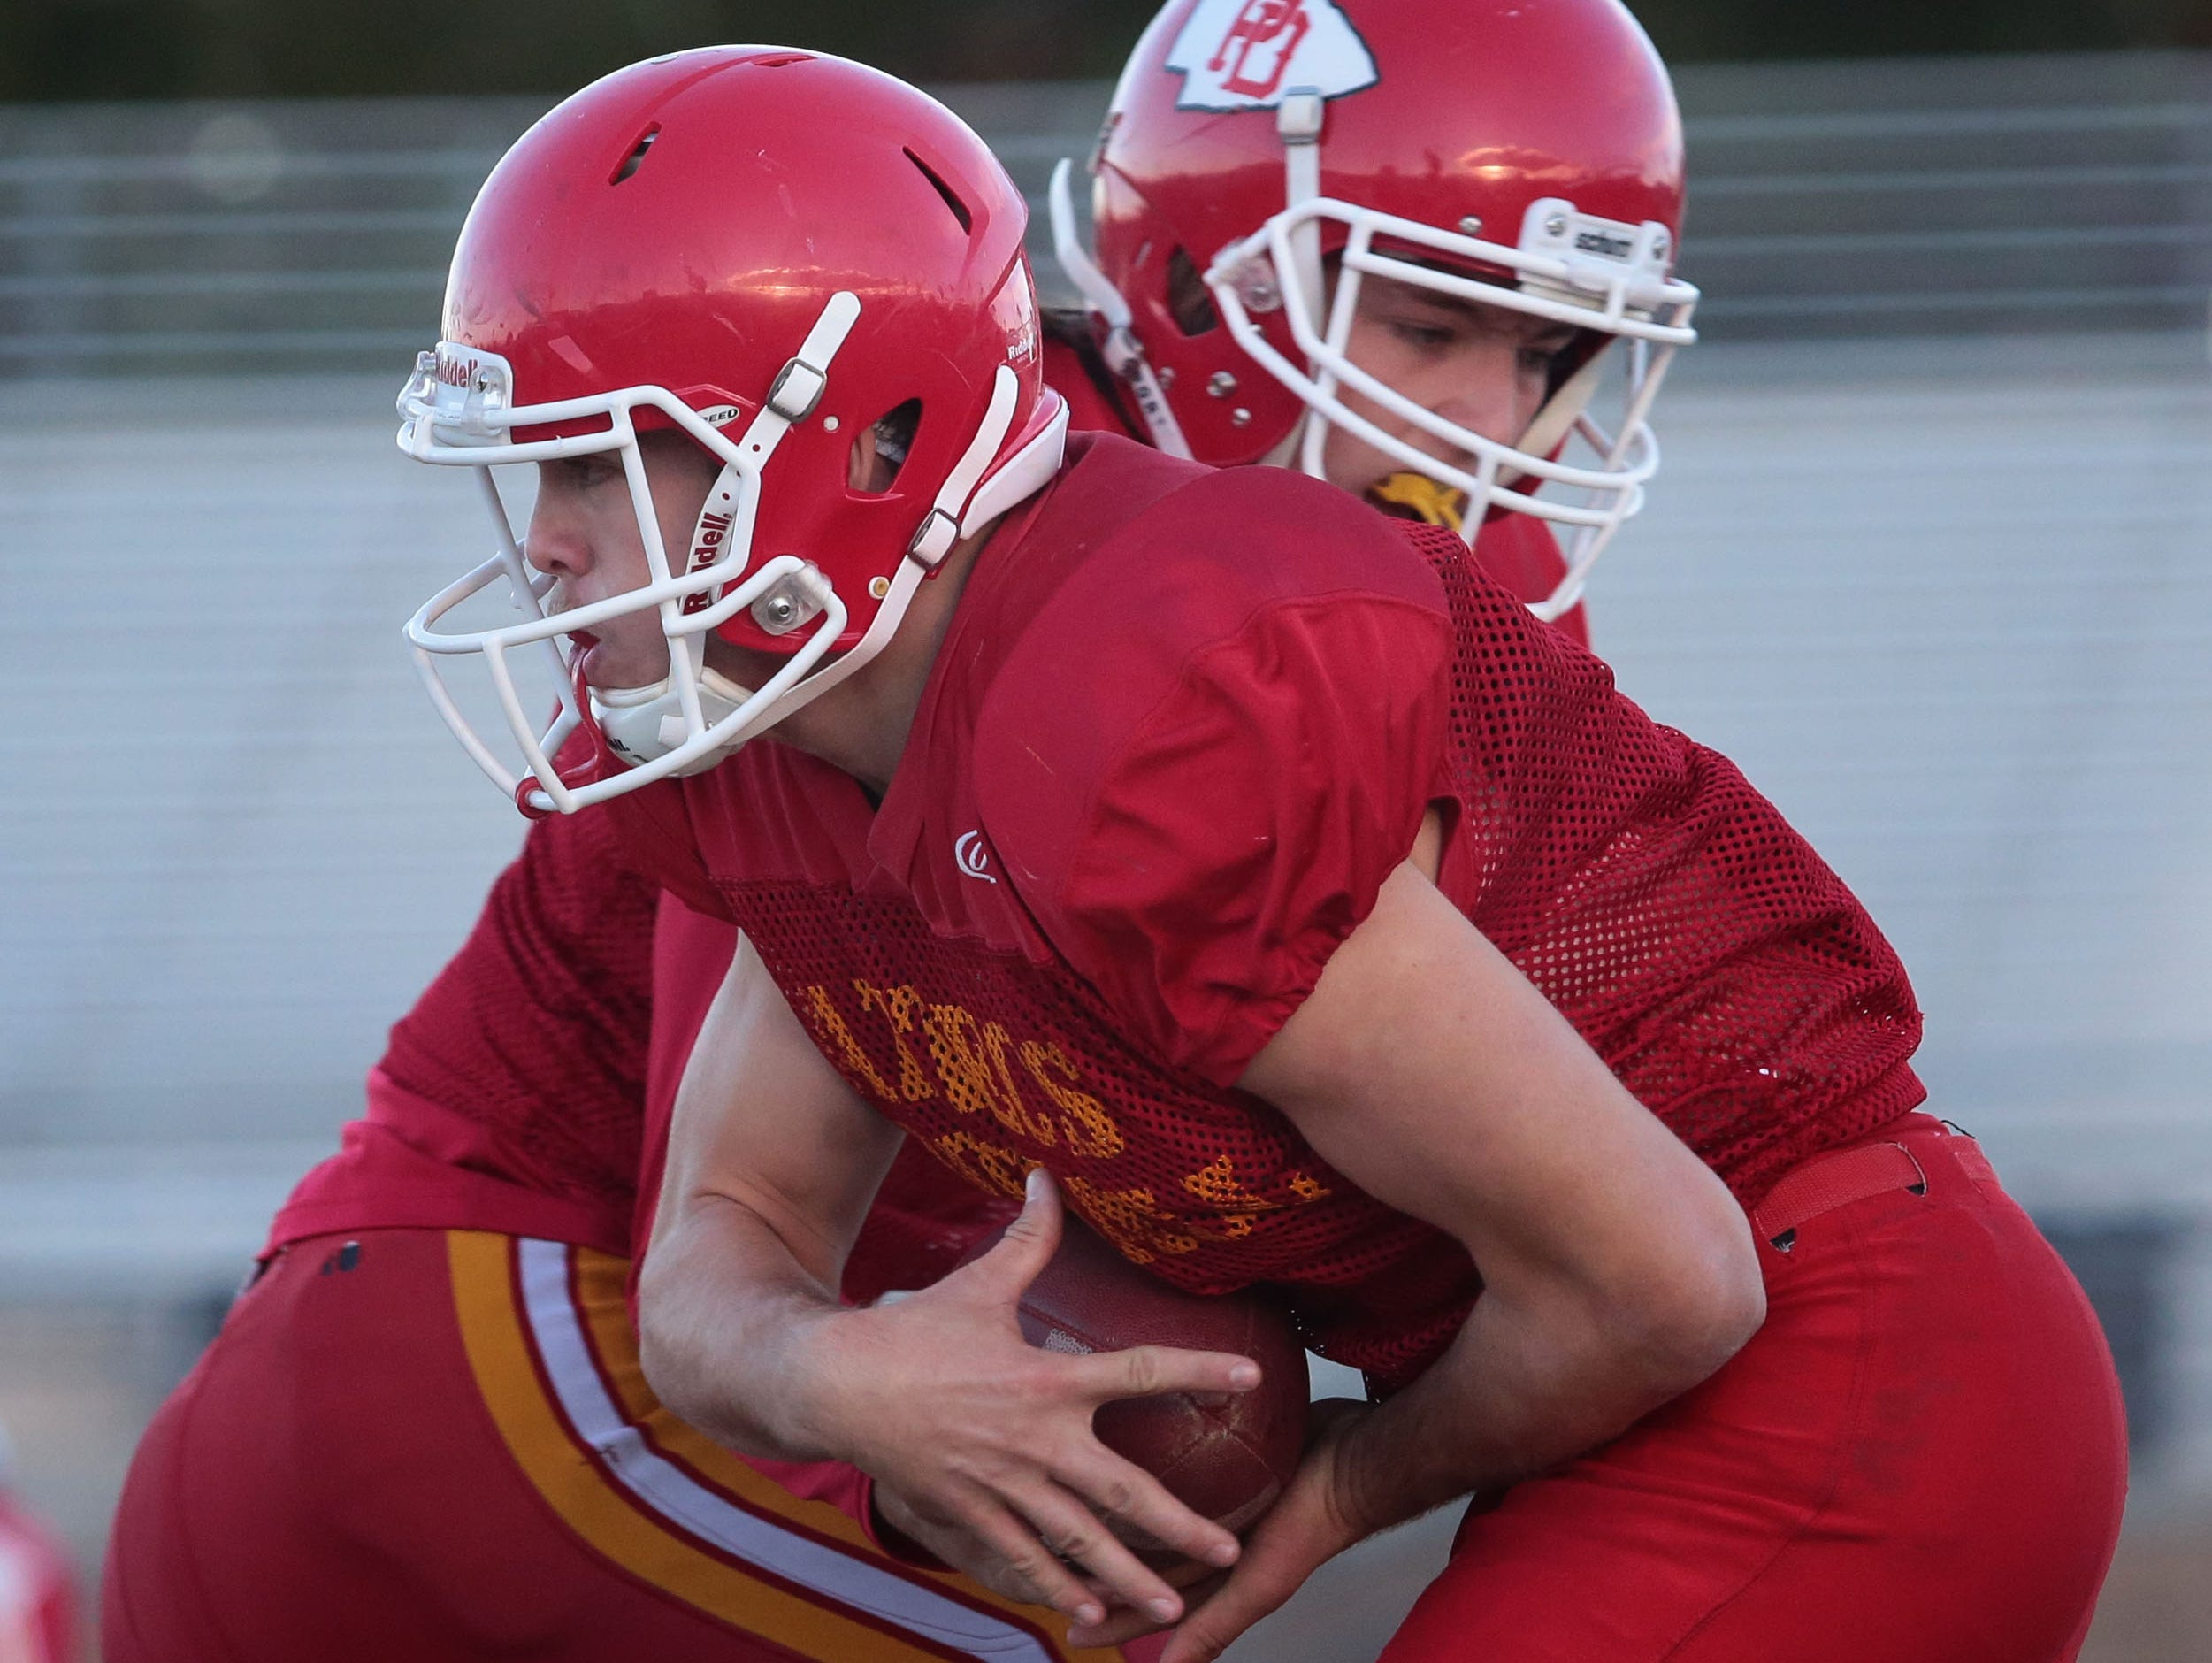 Palm Desert football player Beau Berryhill is handed the ball by quarterback Brian Devlin at practice on Wednesday at Palm Desert High School.